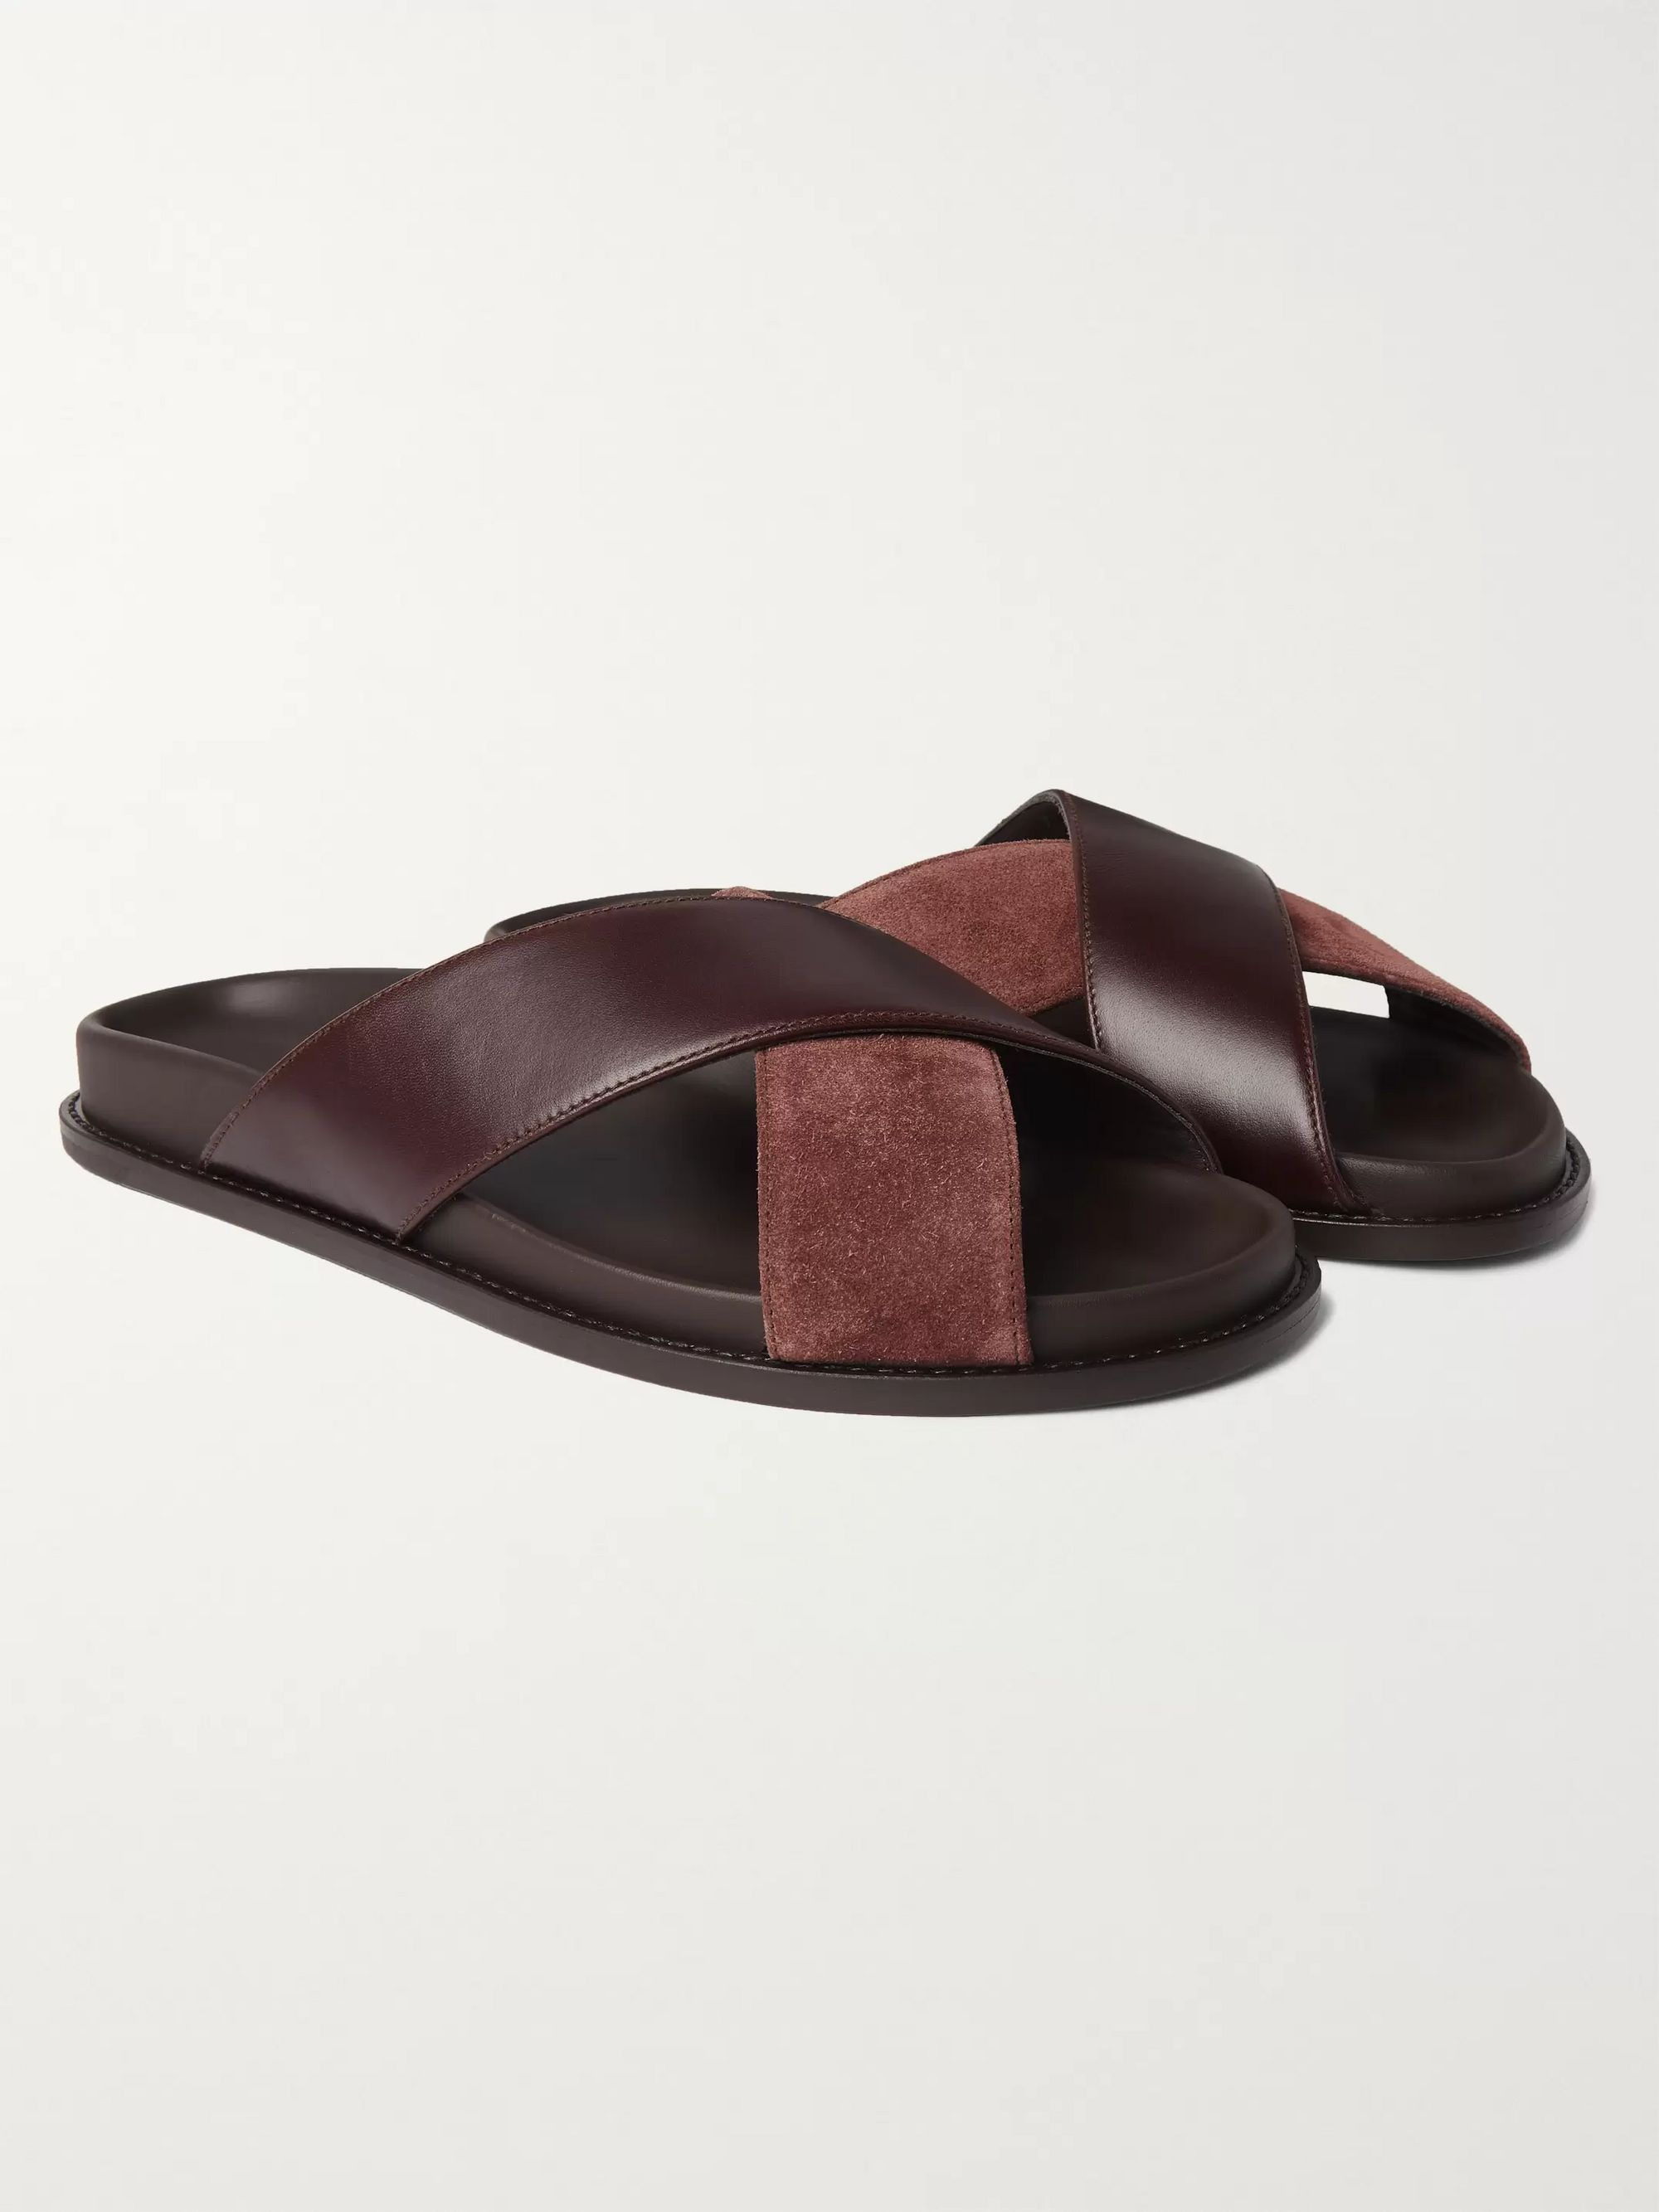 Brown Leather and Suede Sandals | Mr P